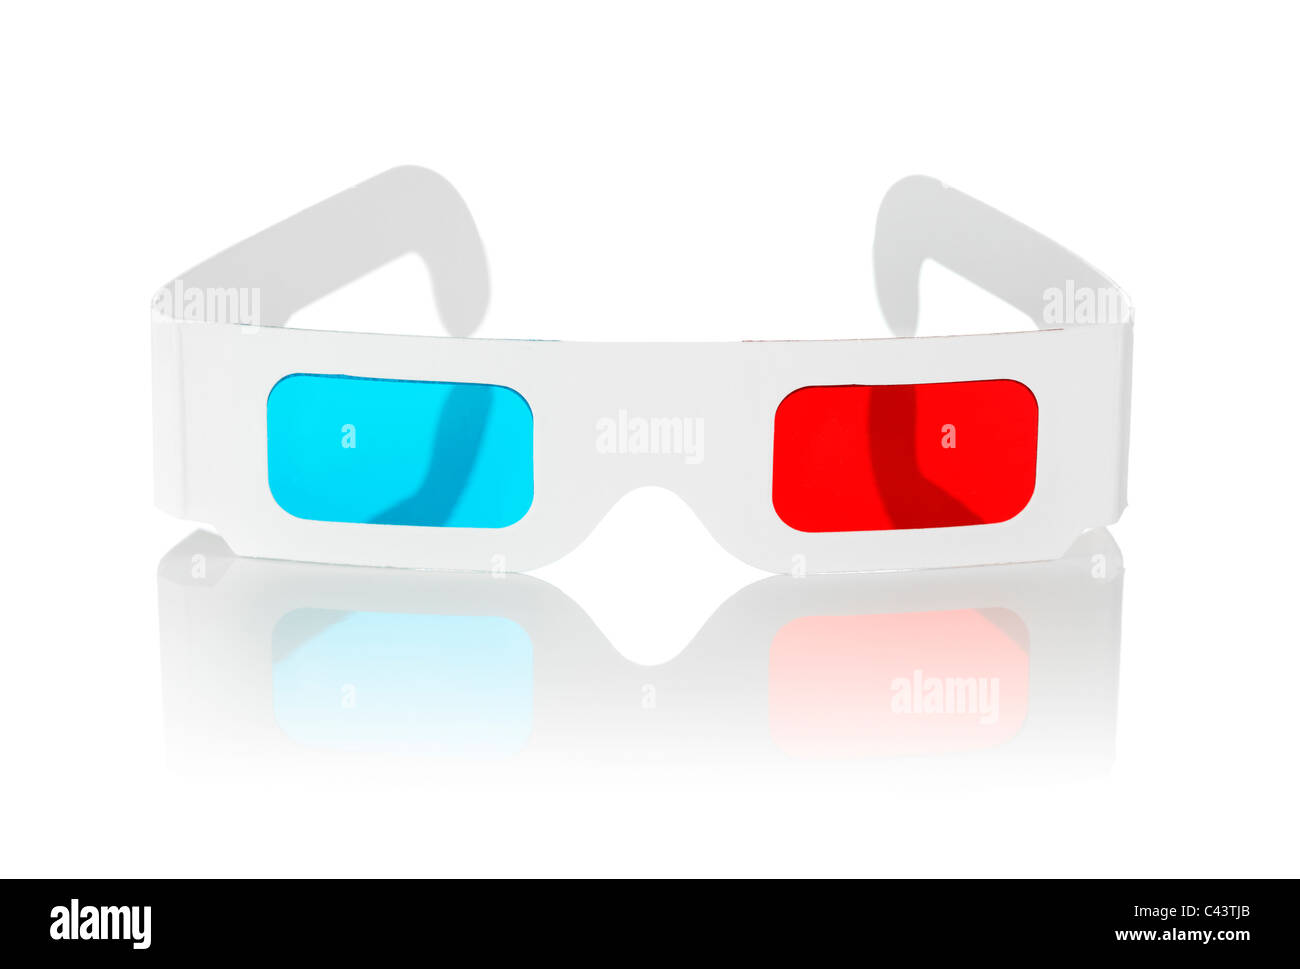 Disposable cheap cardboard 3D glasses with red and cyan lenses isolated on white. - Stock Image